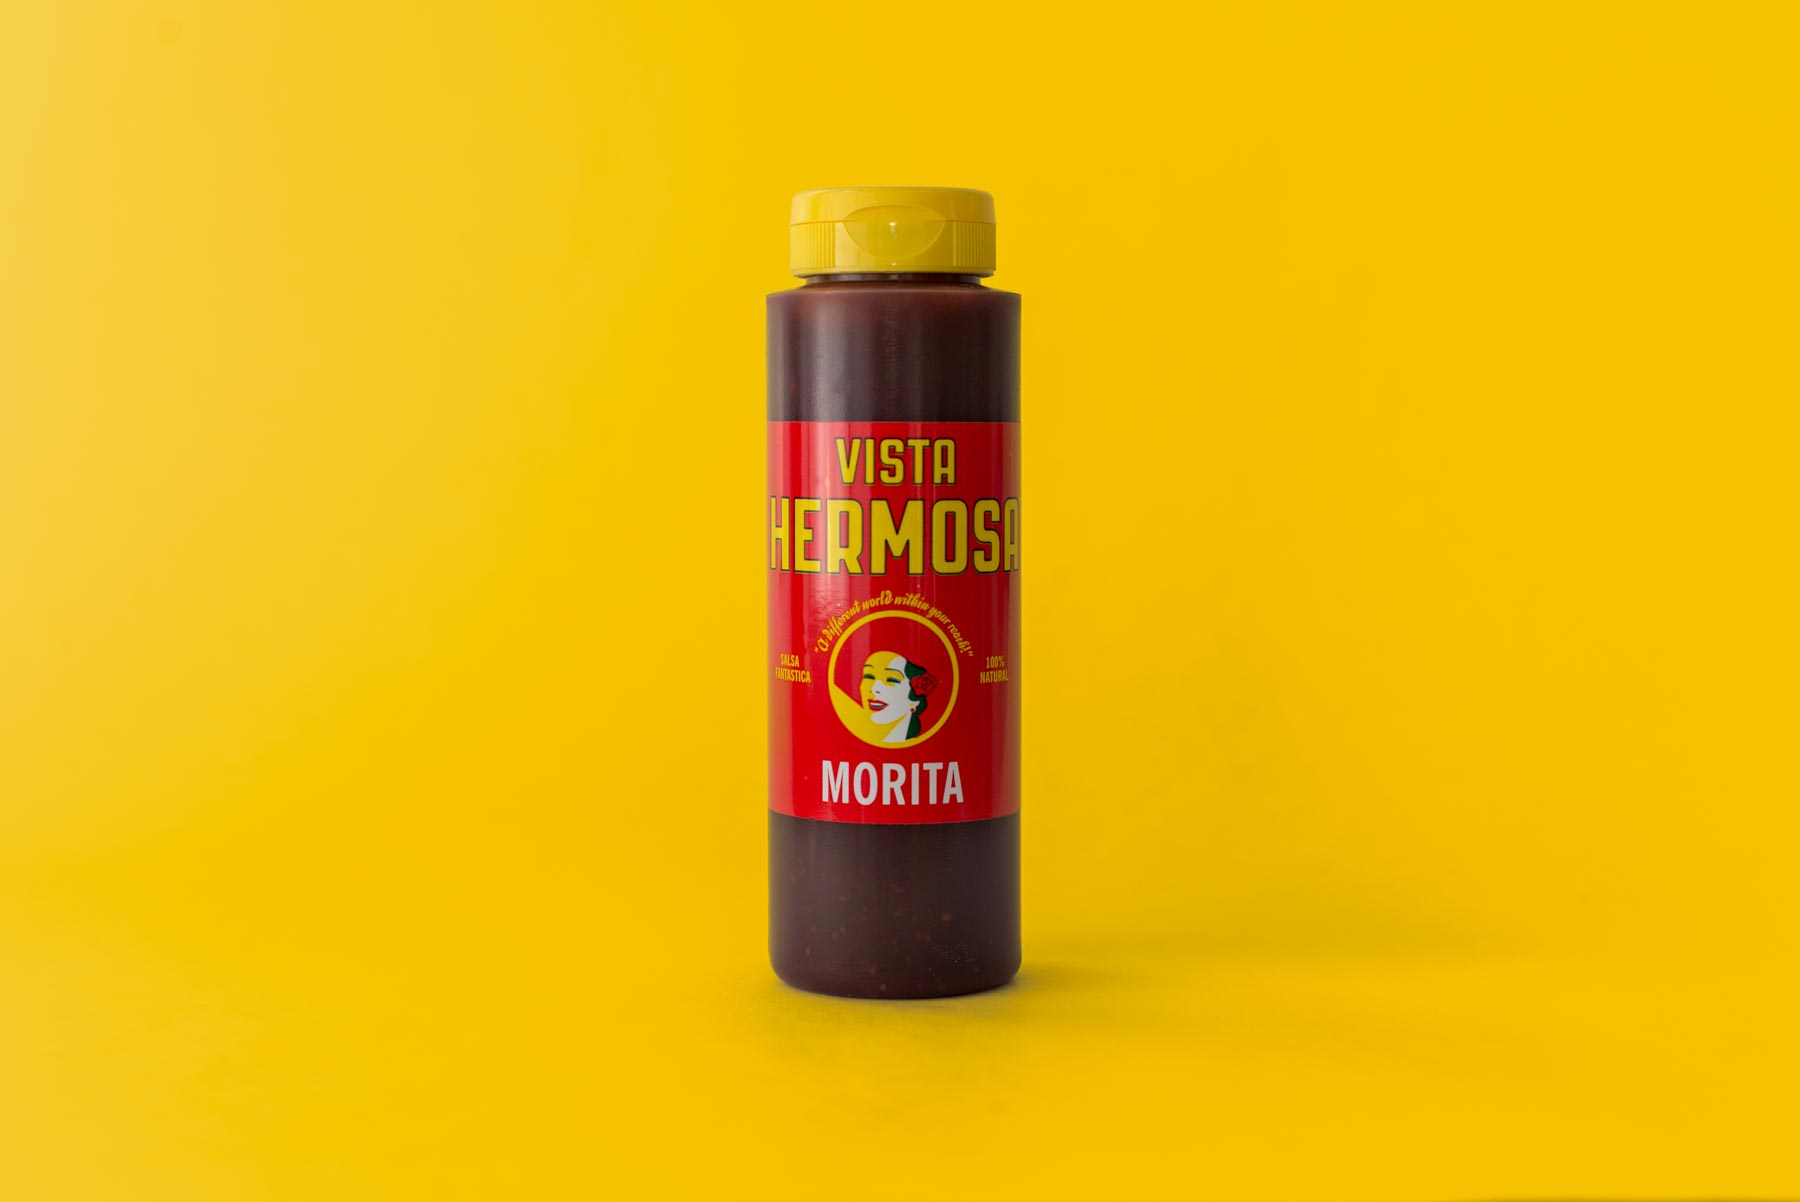 Salsa de Morita - Popular in Puebla and Veracruz, this salsa has a dark smokiness balanced with a touch of sweet.